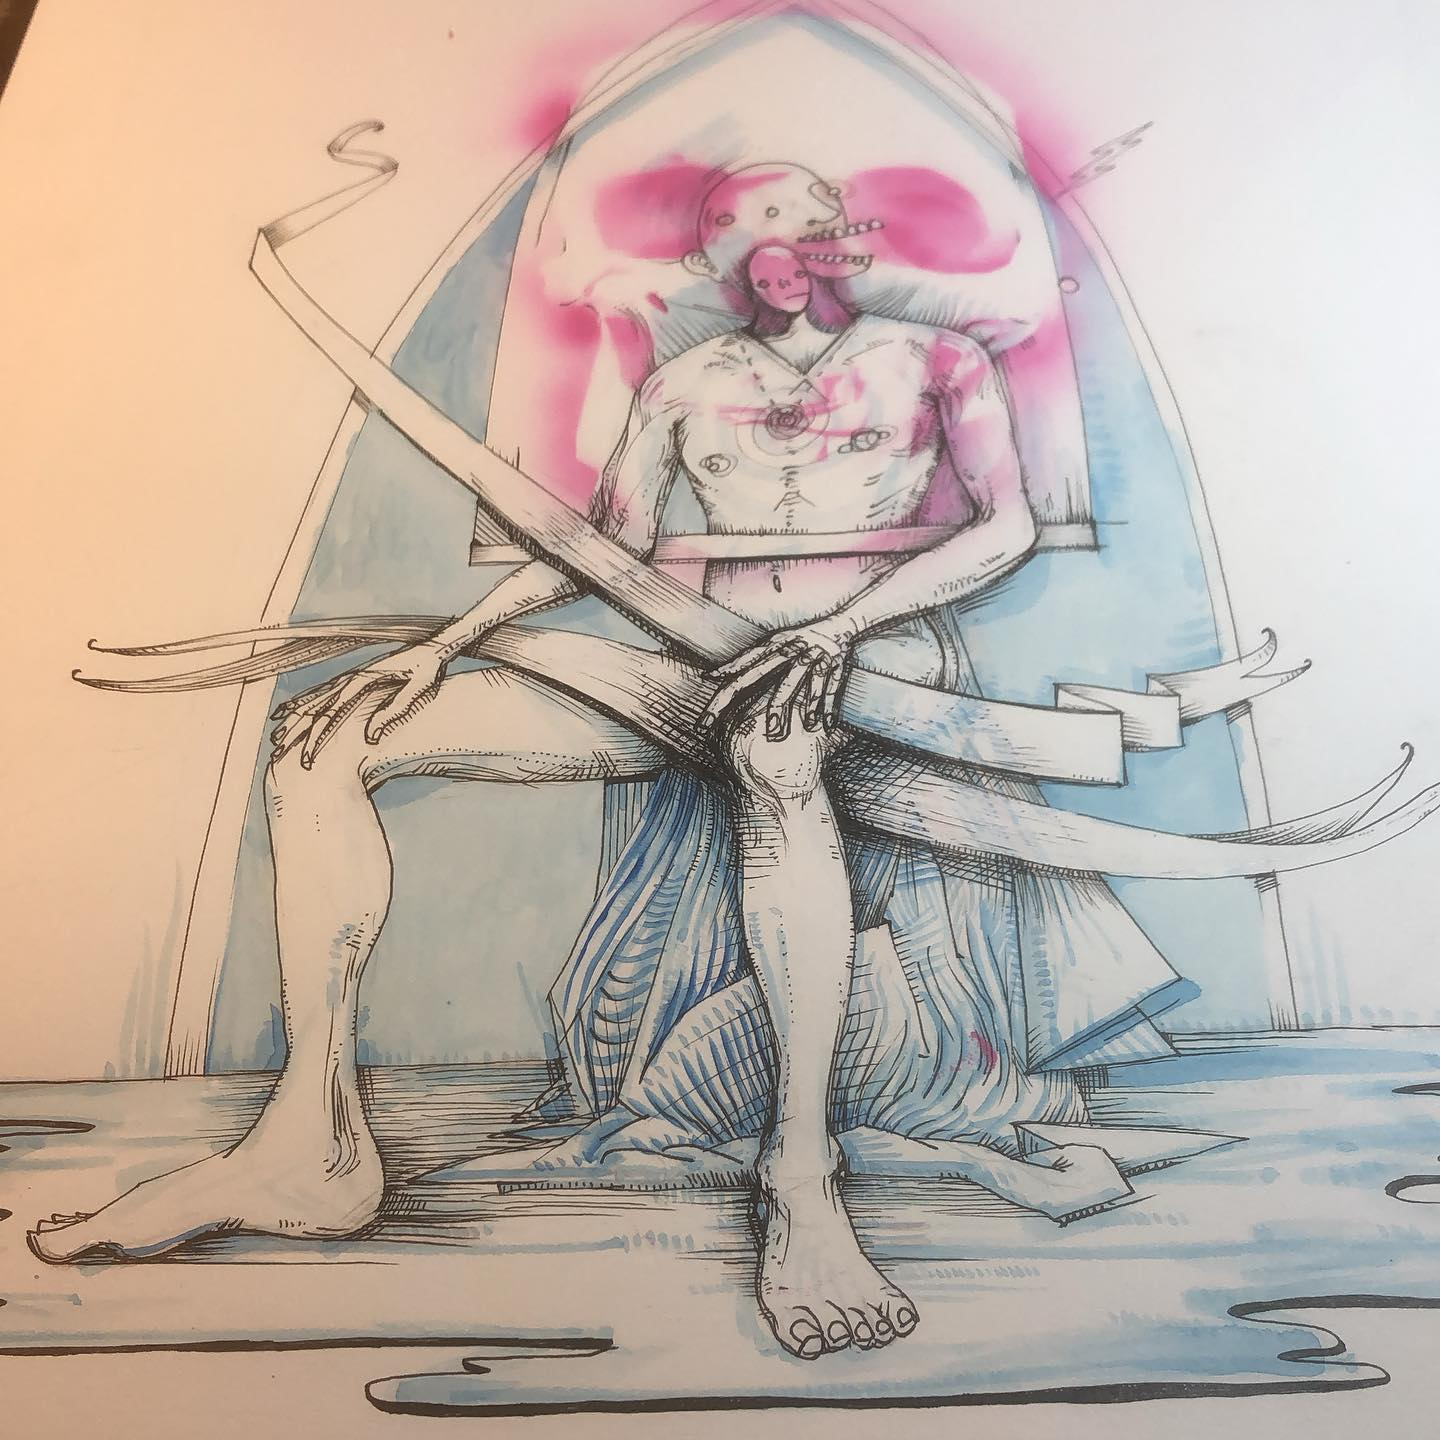 Some Feet - figure drawing with additional ink, airbrush, and watercolor layers in progress